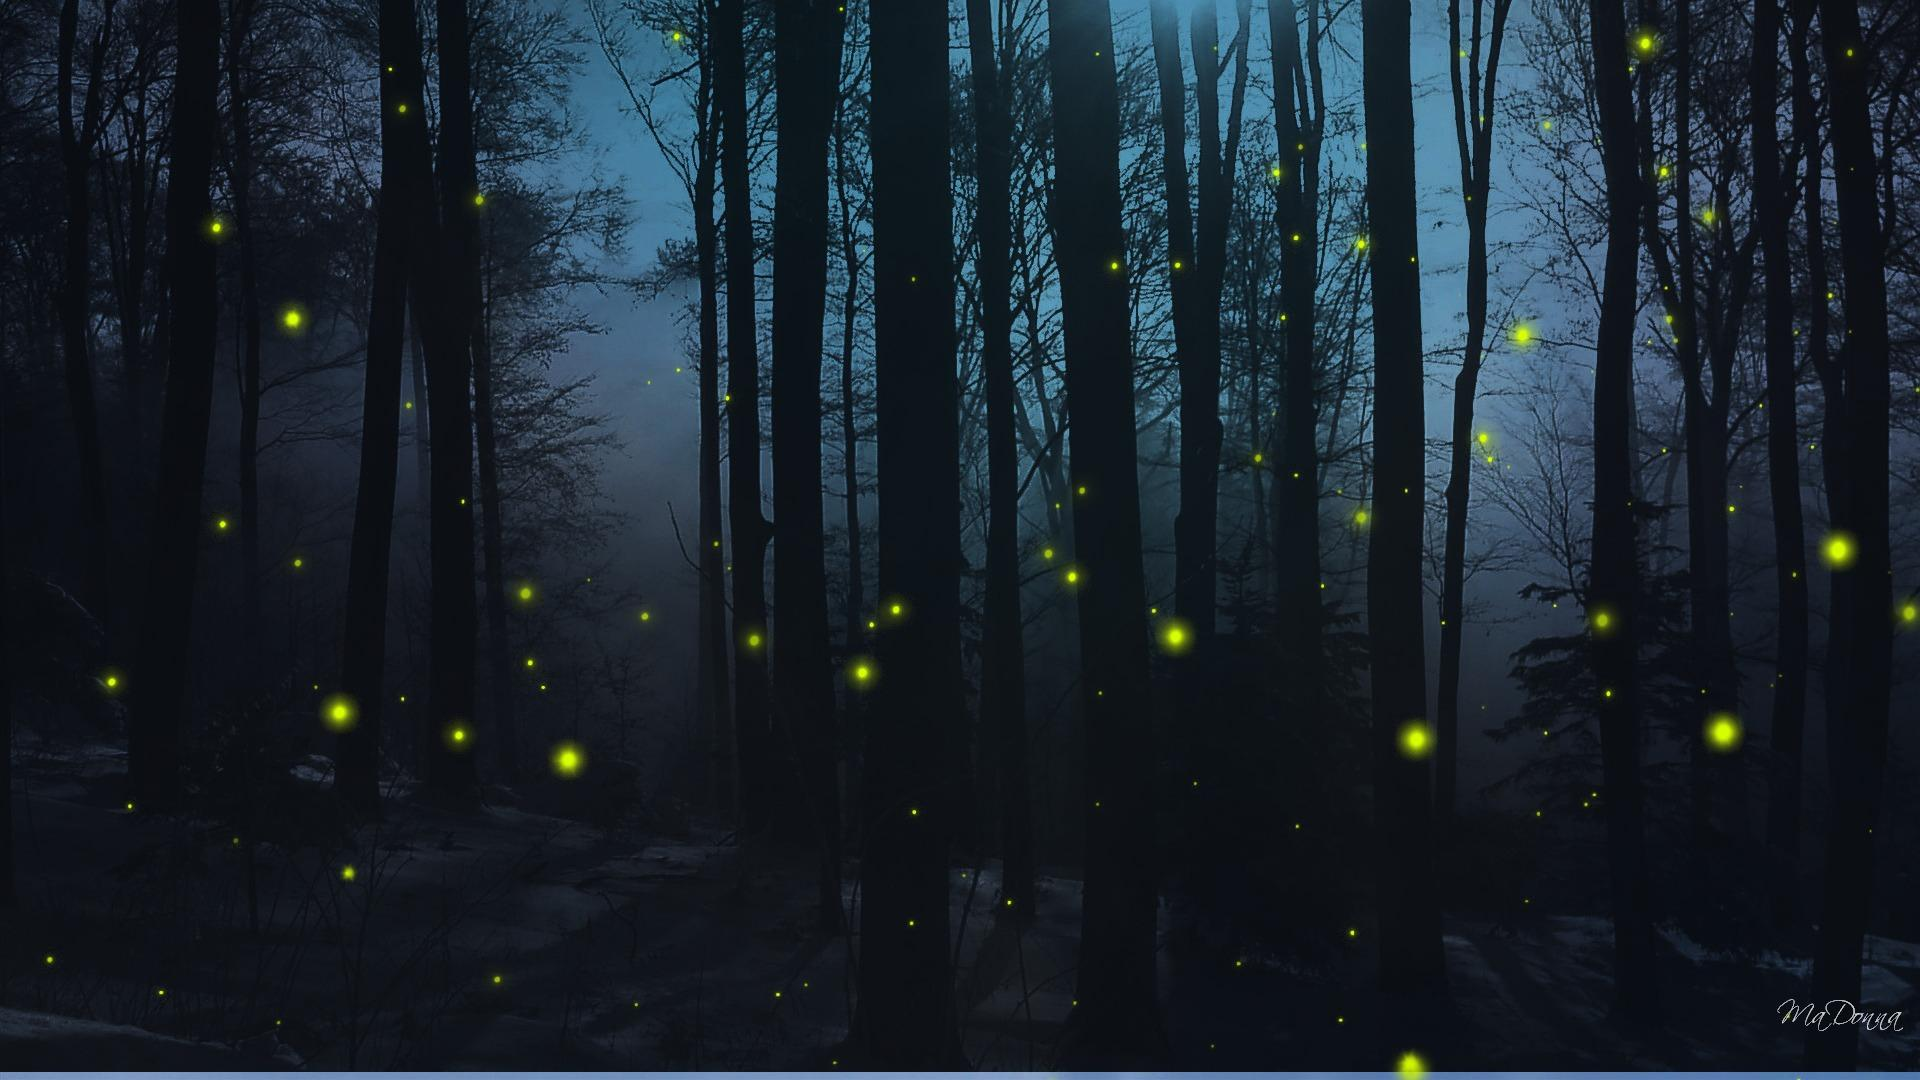 firefly hd wallpapers for desktop download